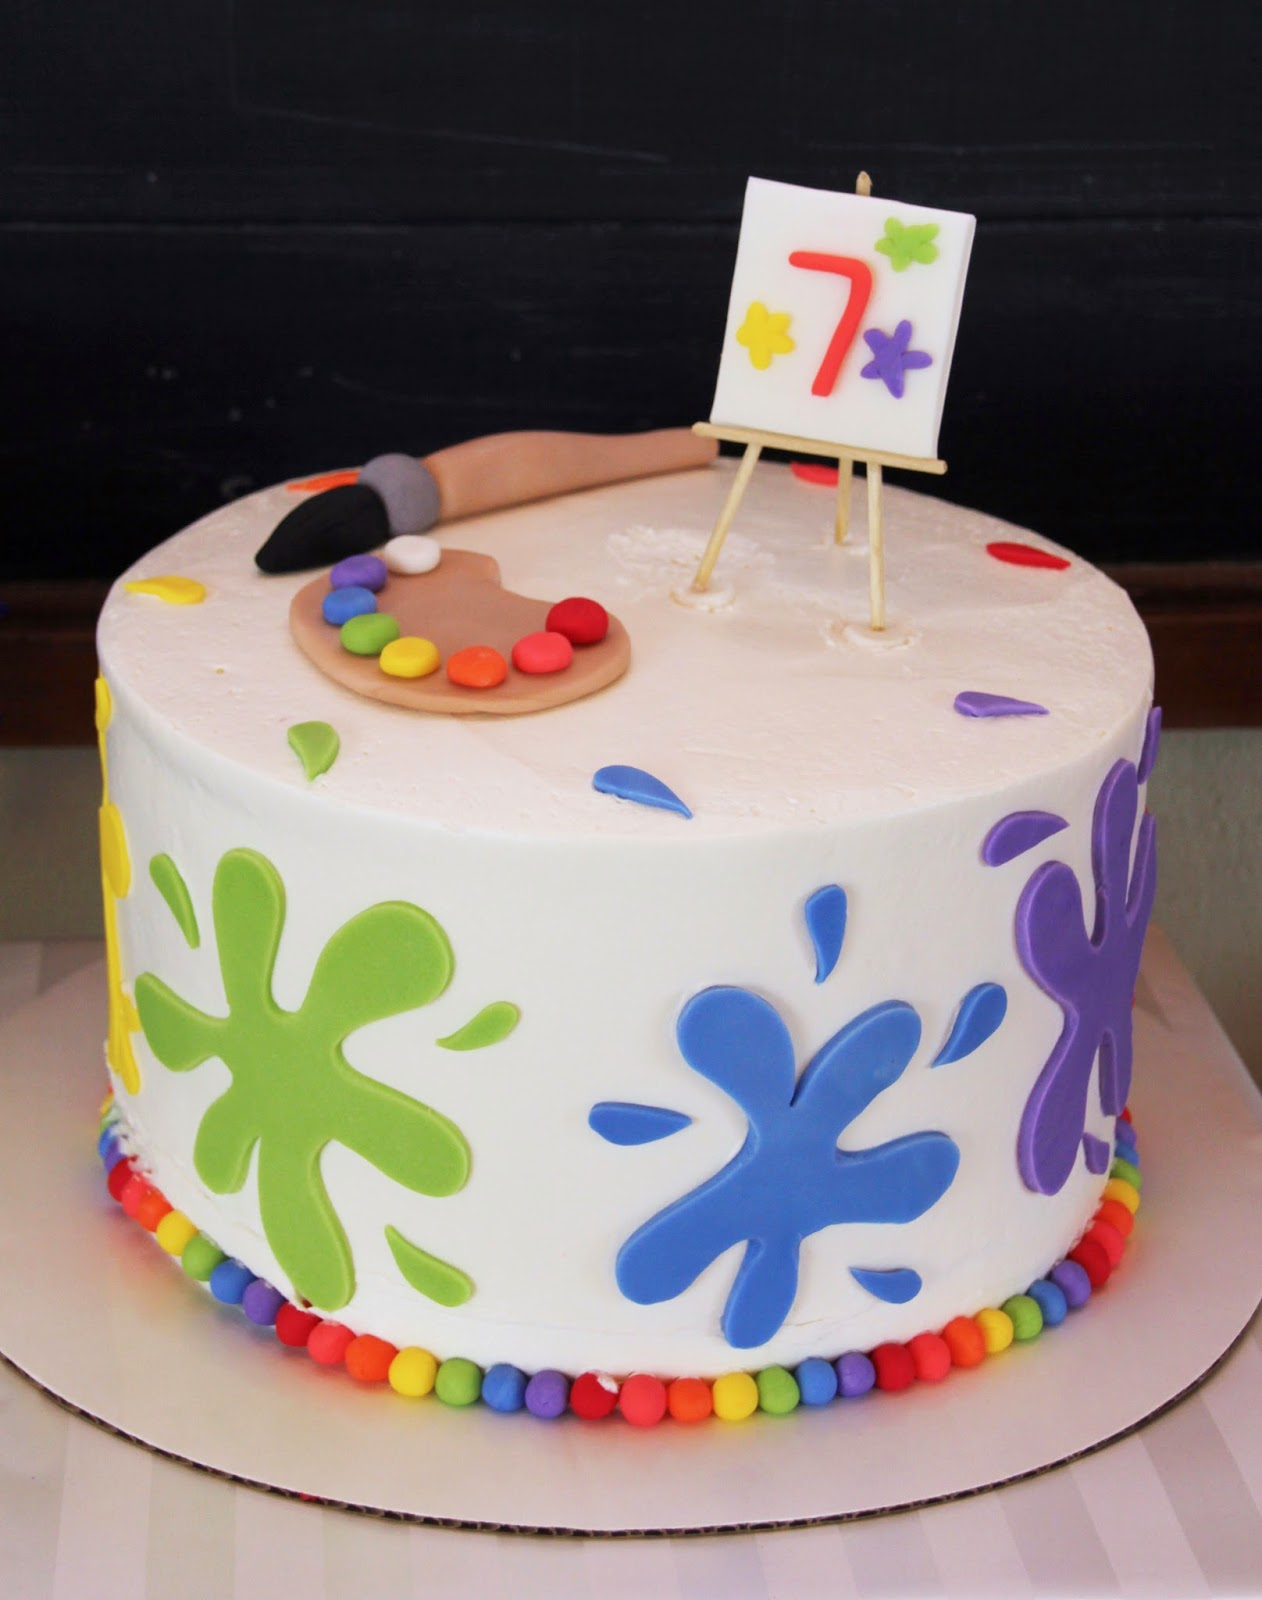 Cake Artist 4 You : 5M Creations: Rainbow Art Party